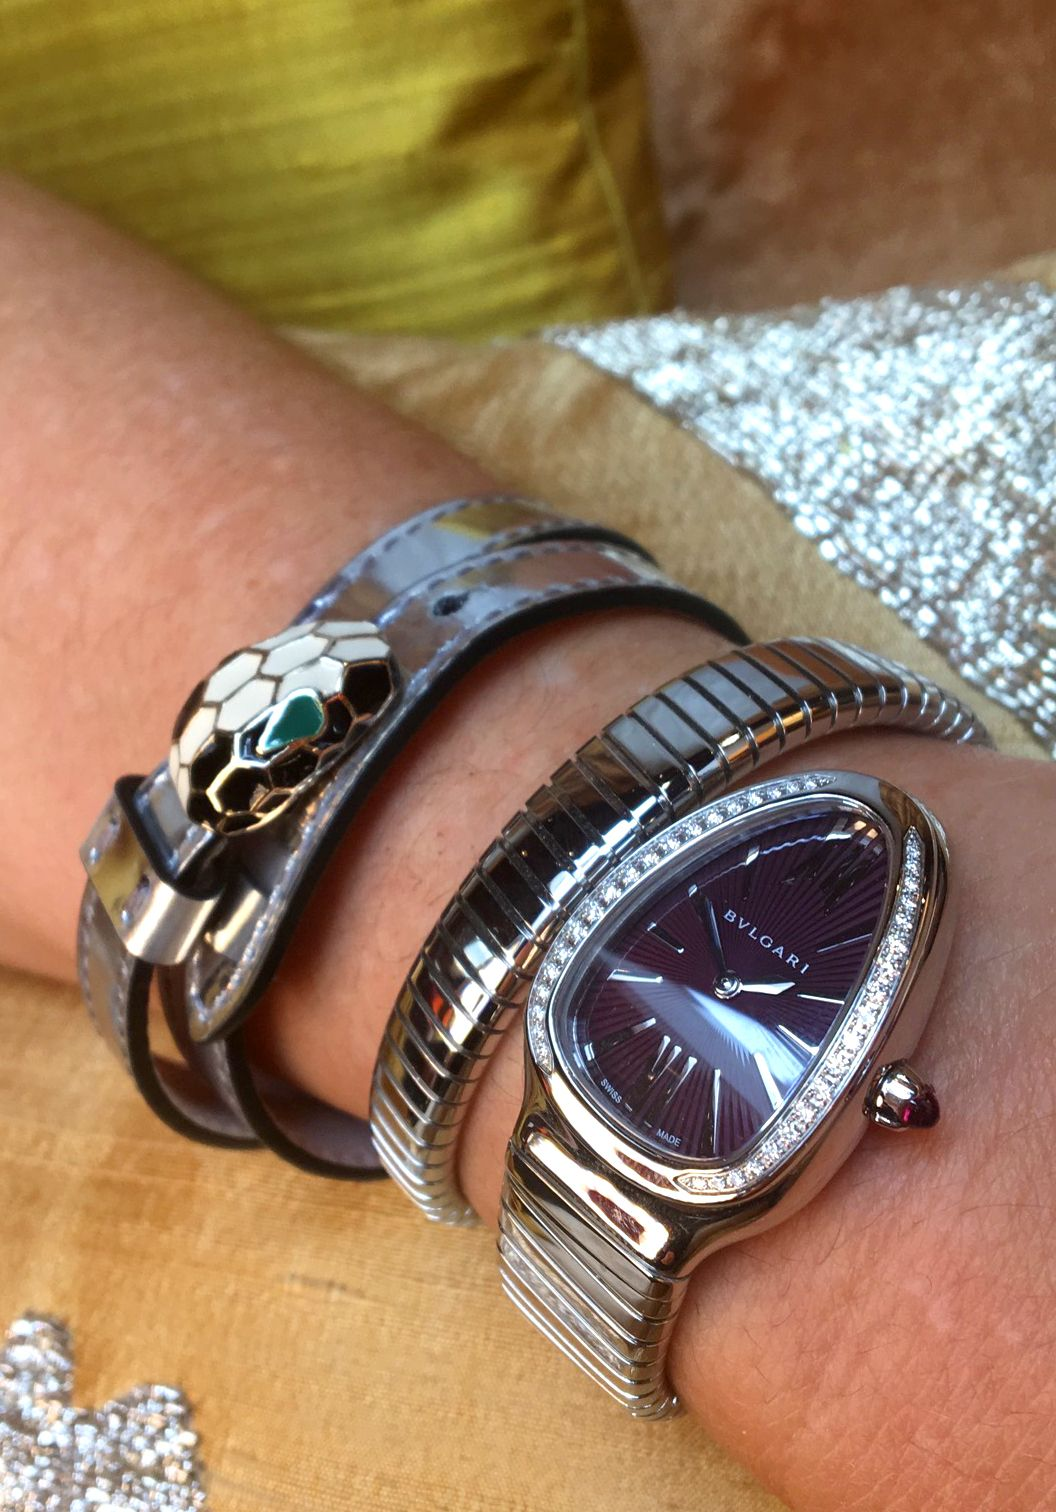 Pin By Har Dev On Watches Fancy Watches Bvlgari